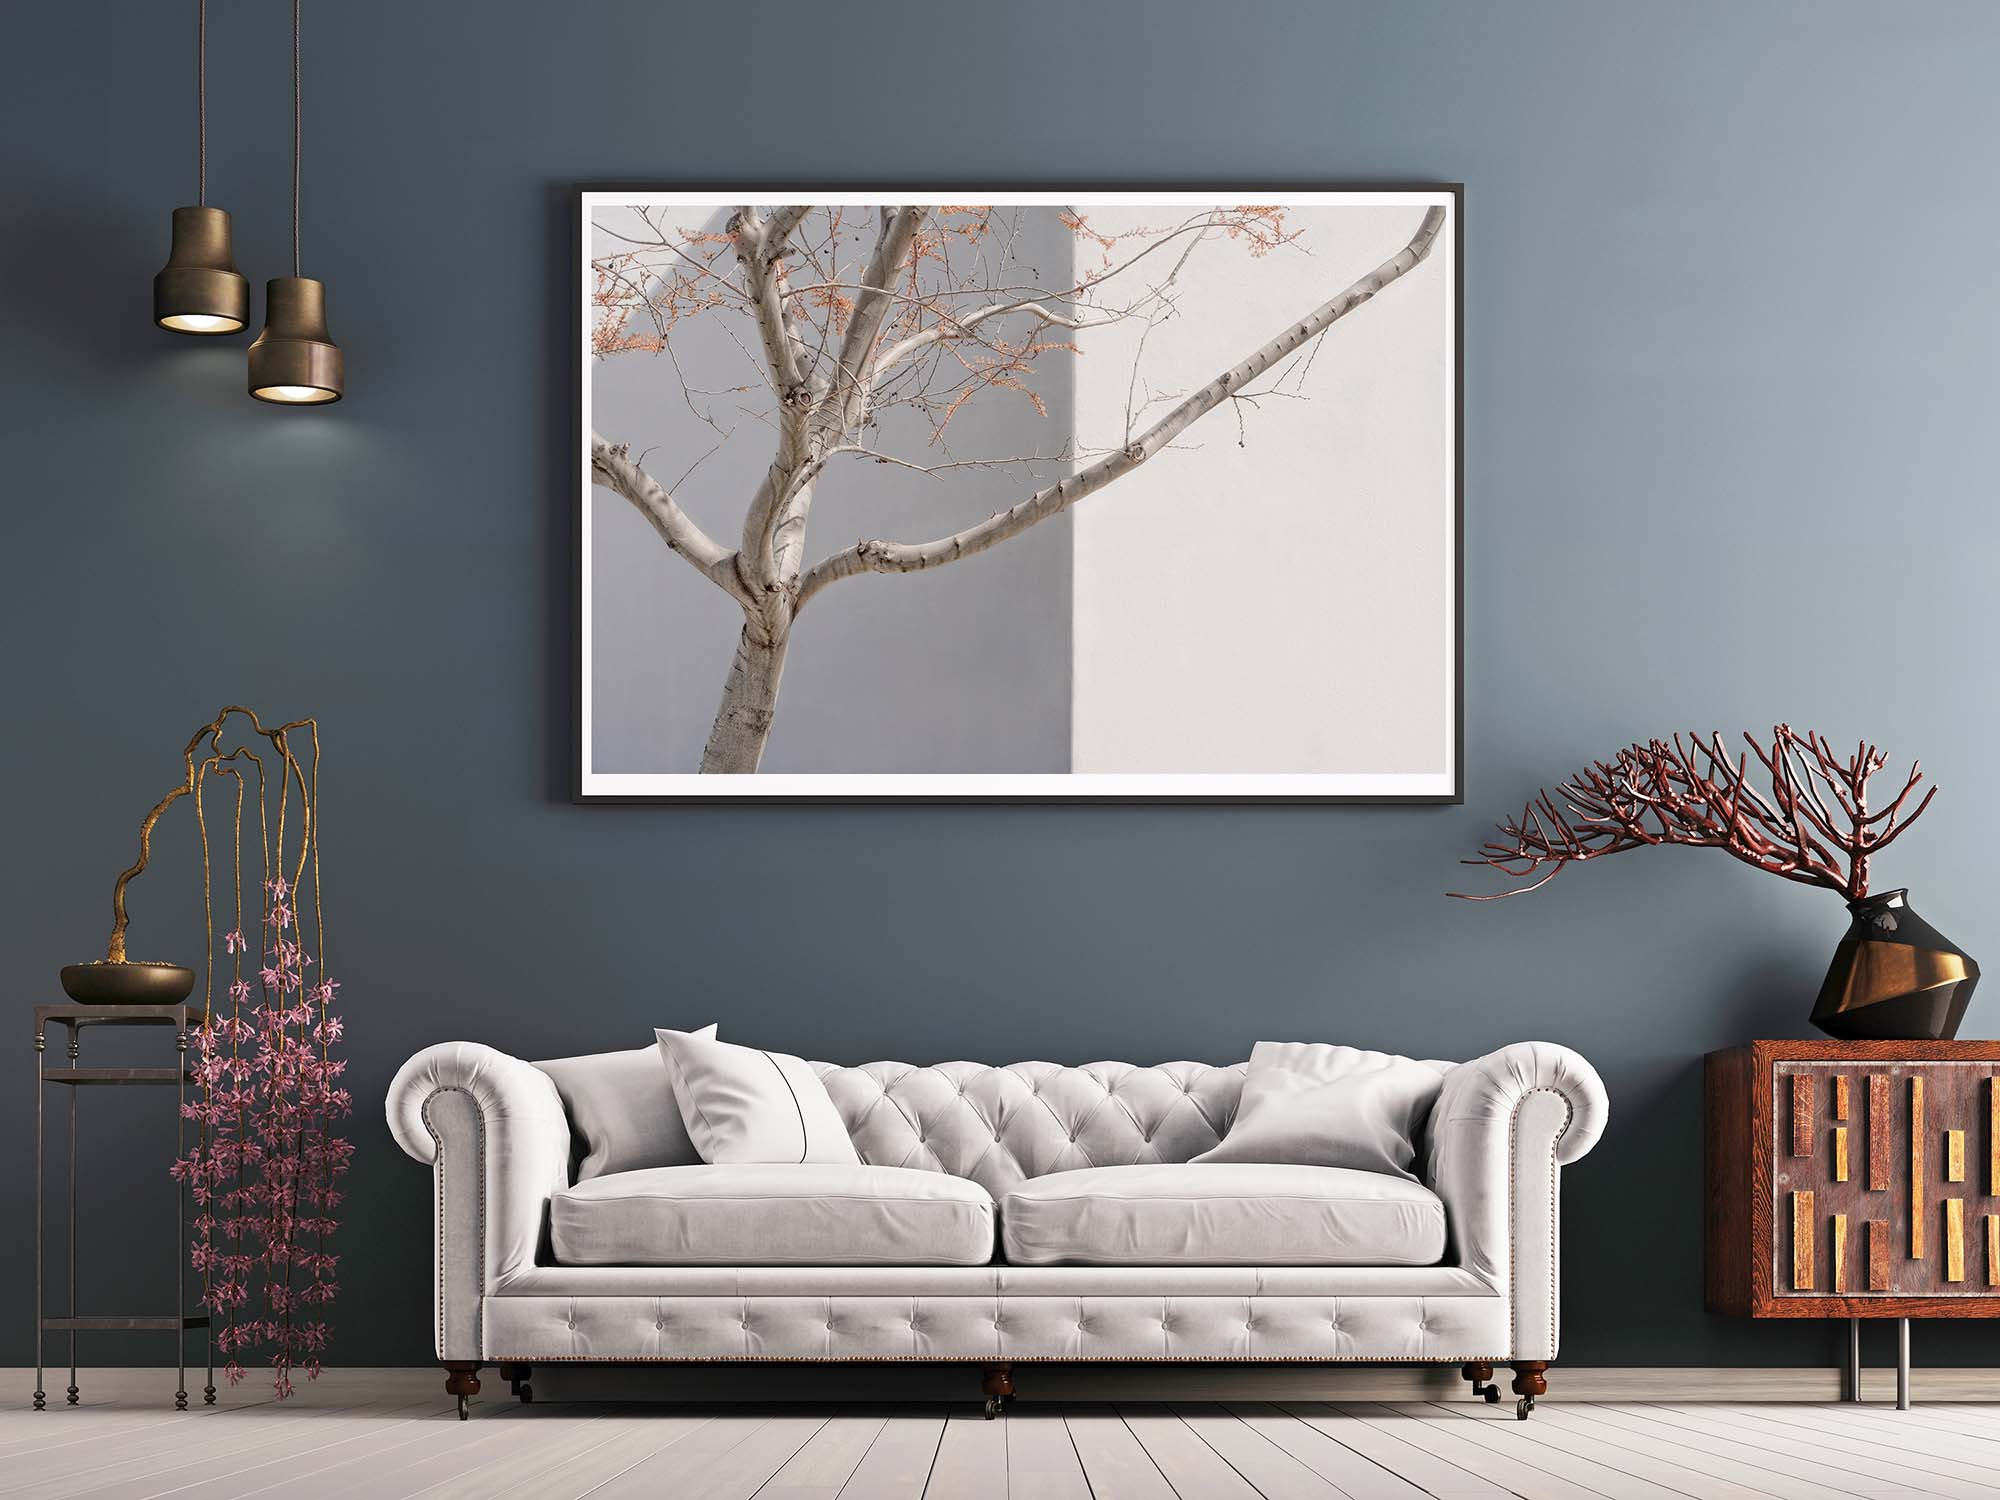 tree poster on gray wall in interior classical style with white sofa, and decor.